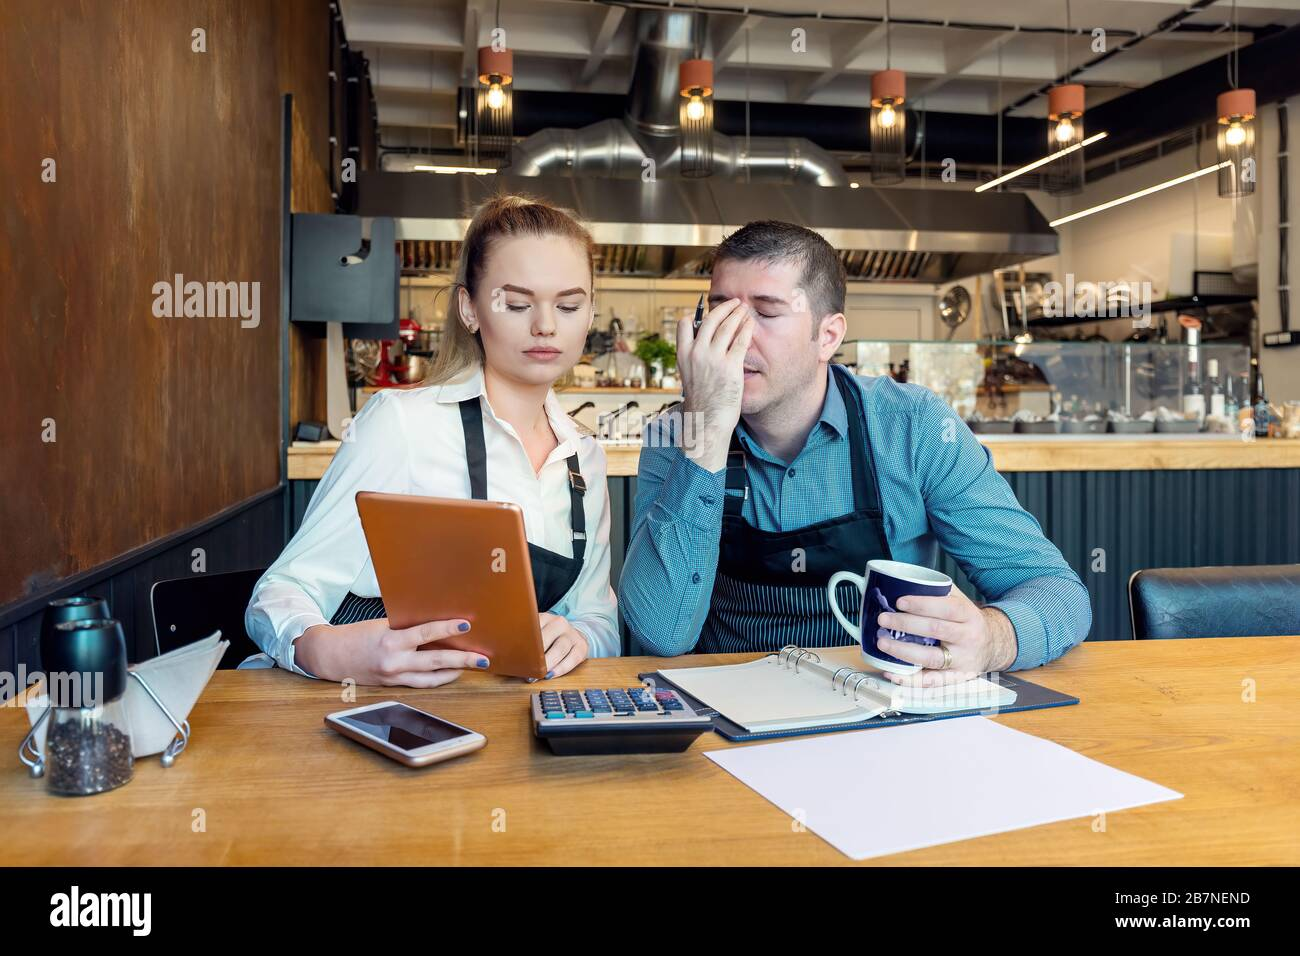 Worried business owners calculating finances - Small restaurant entrepreneurs SME go bankrupt due to Coronavirus pandemic - Young woman and man with h Stock Photo